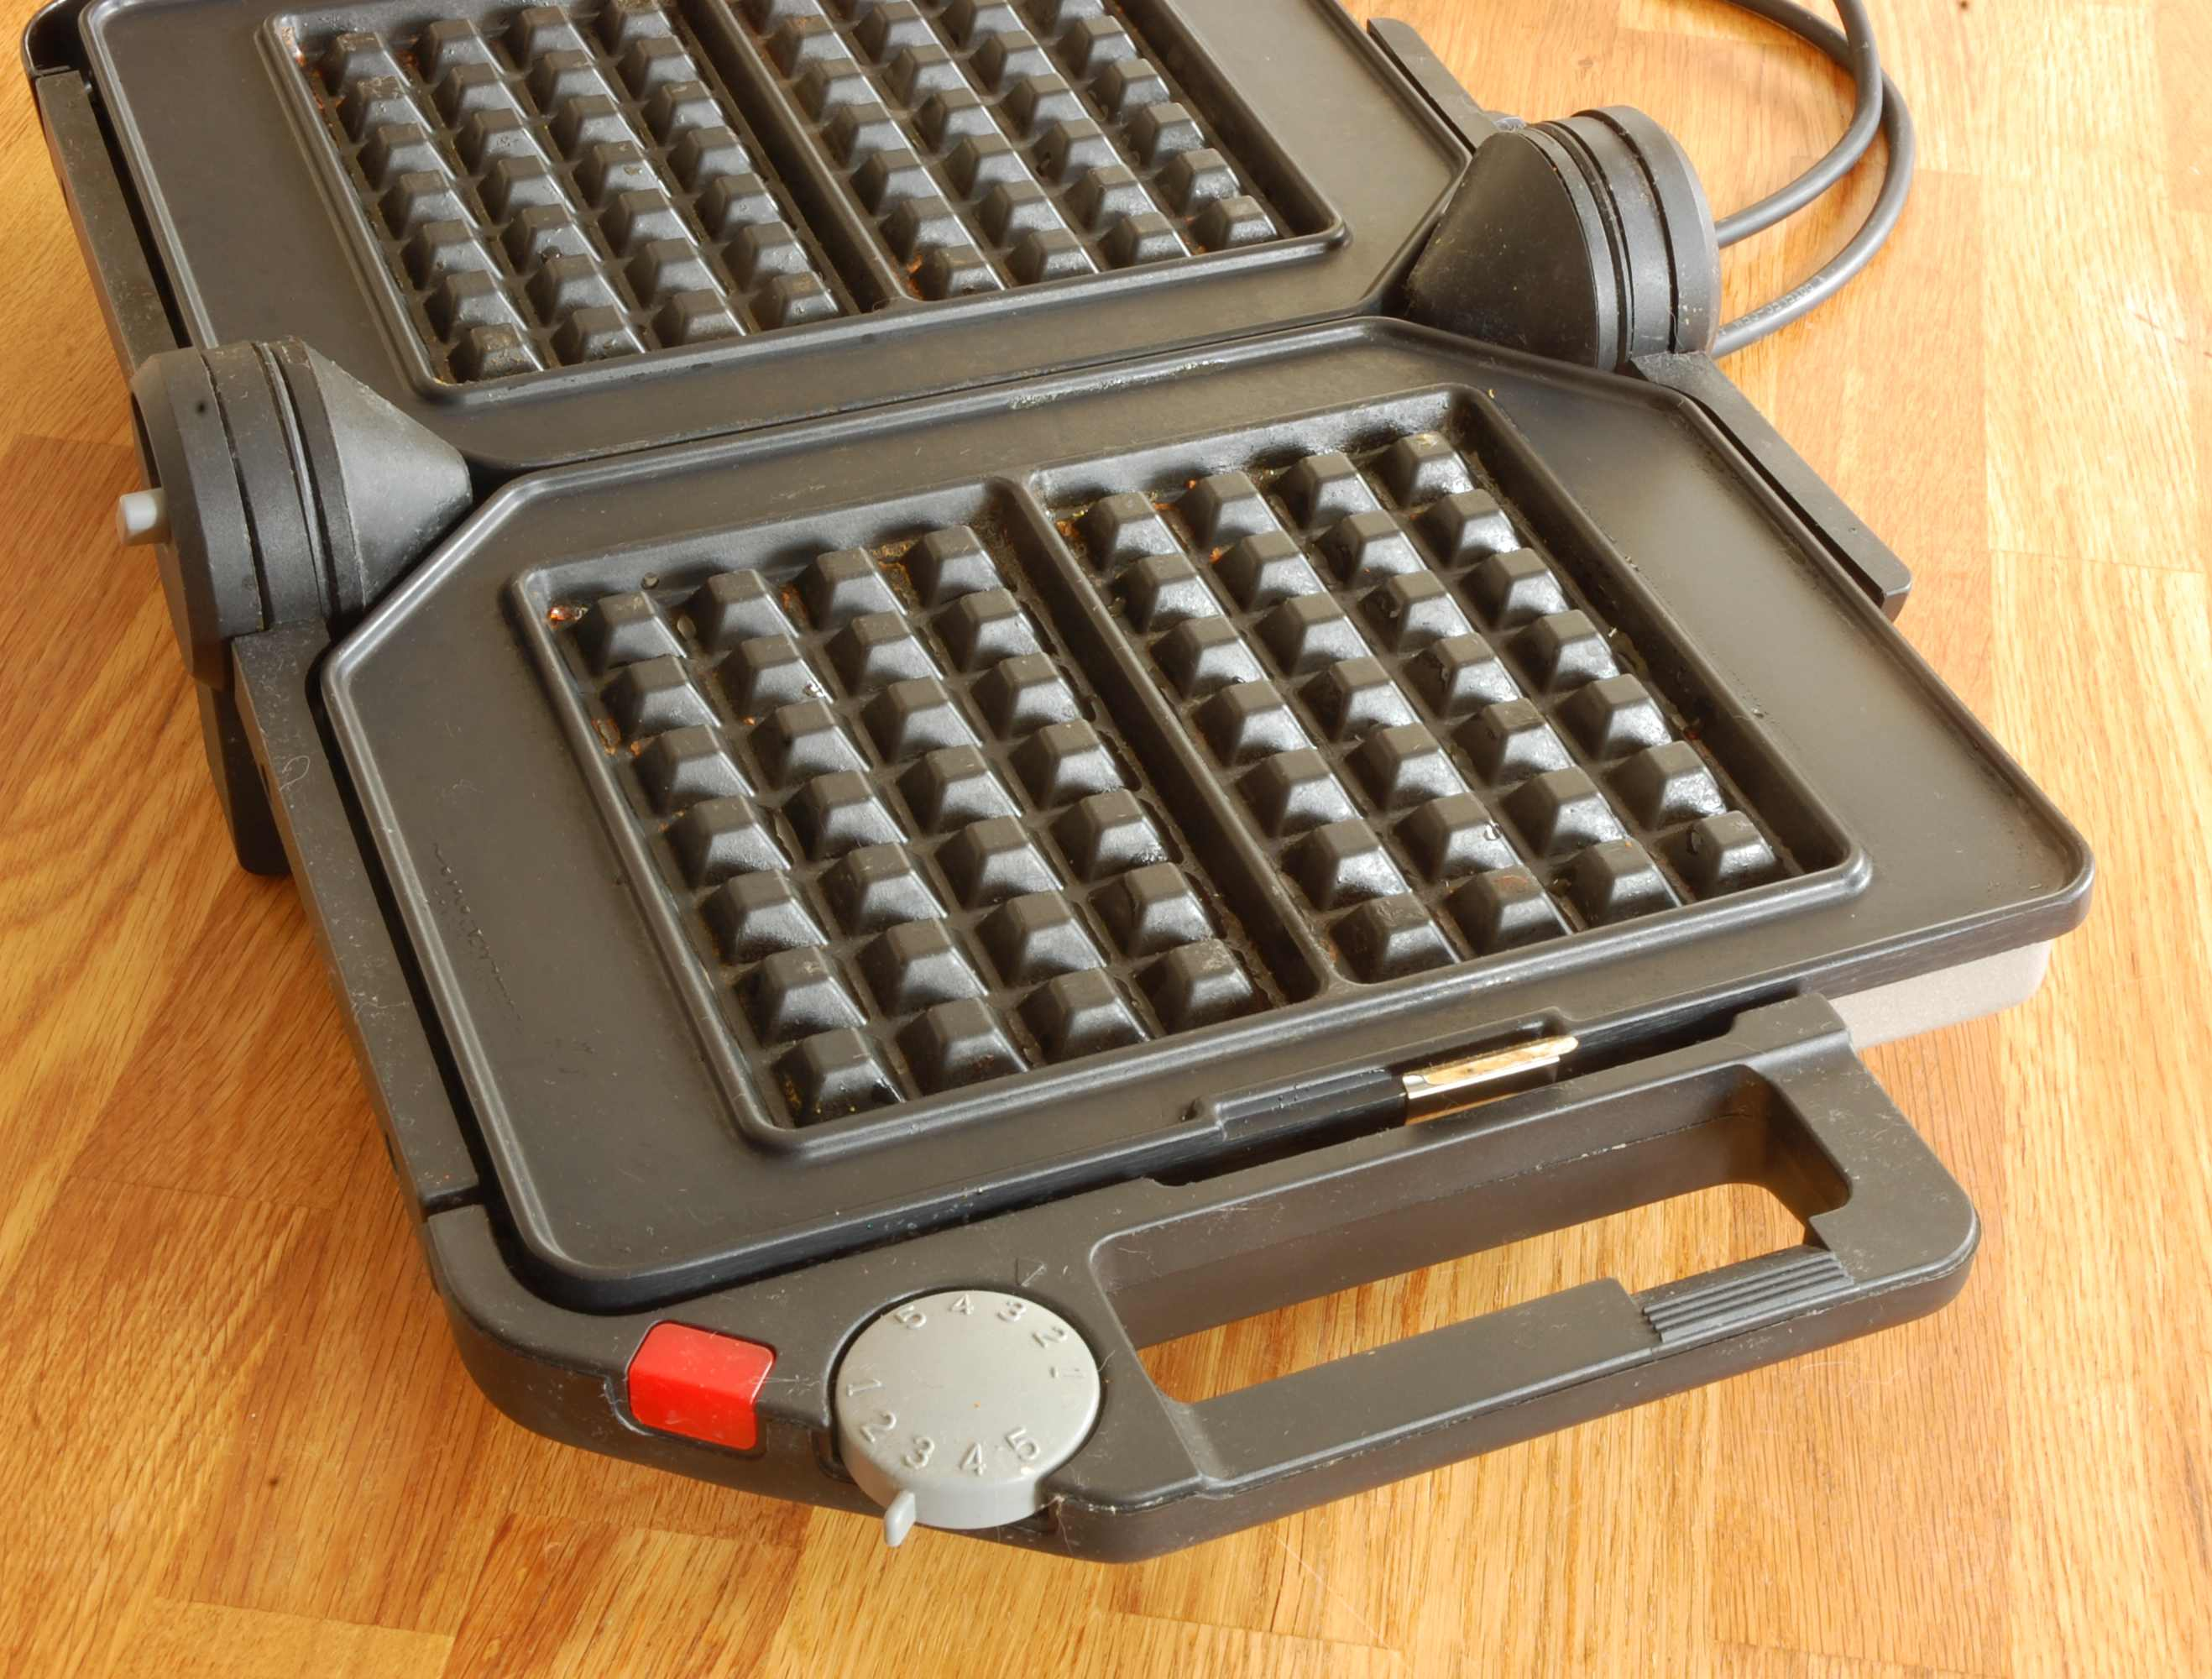 FriFri_Waffle_Iron_With_Brussels_Plate_In